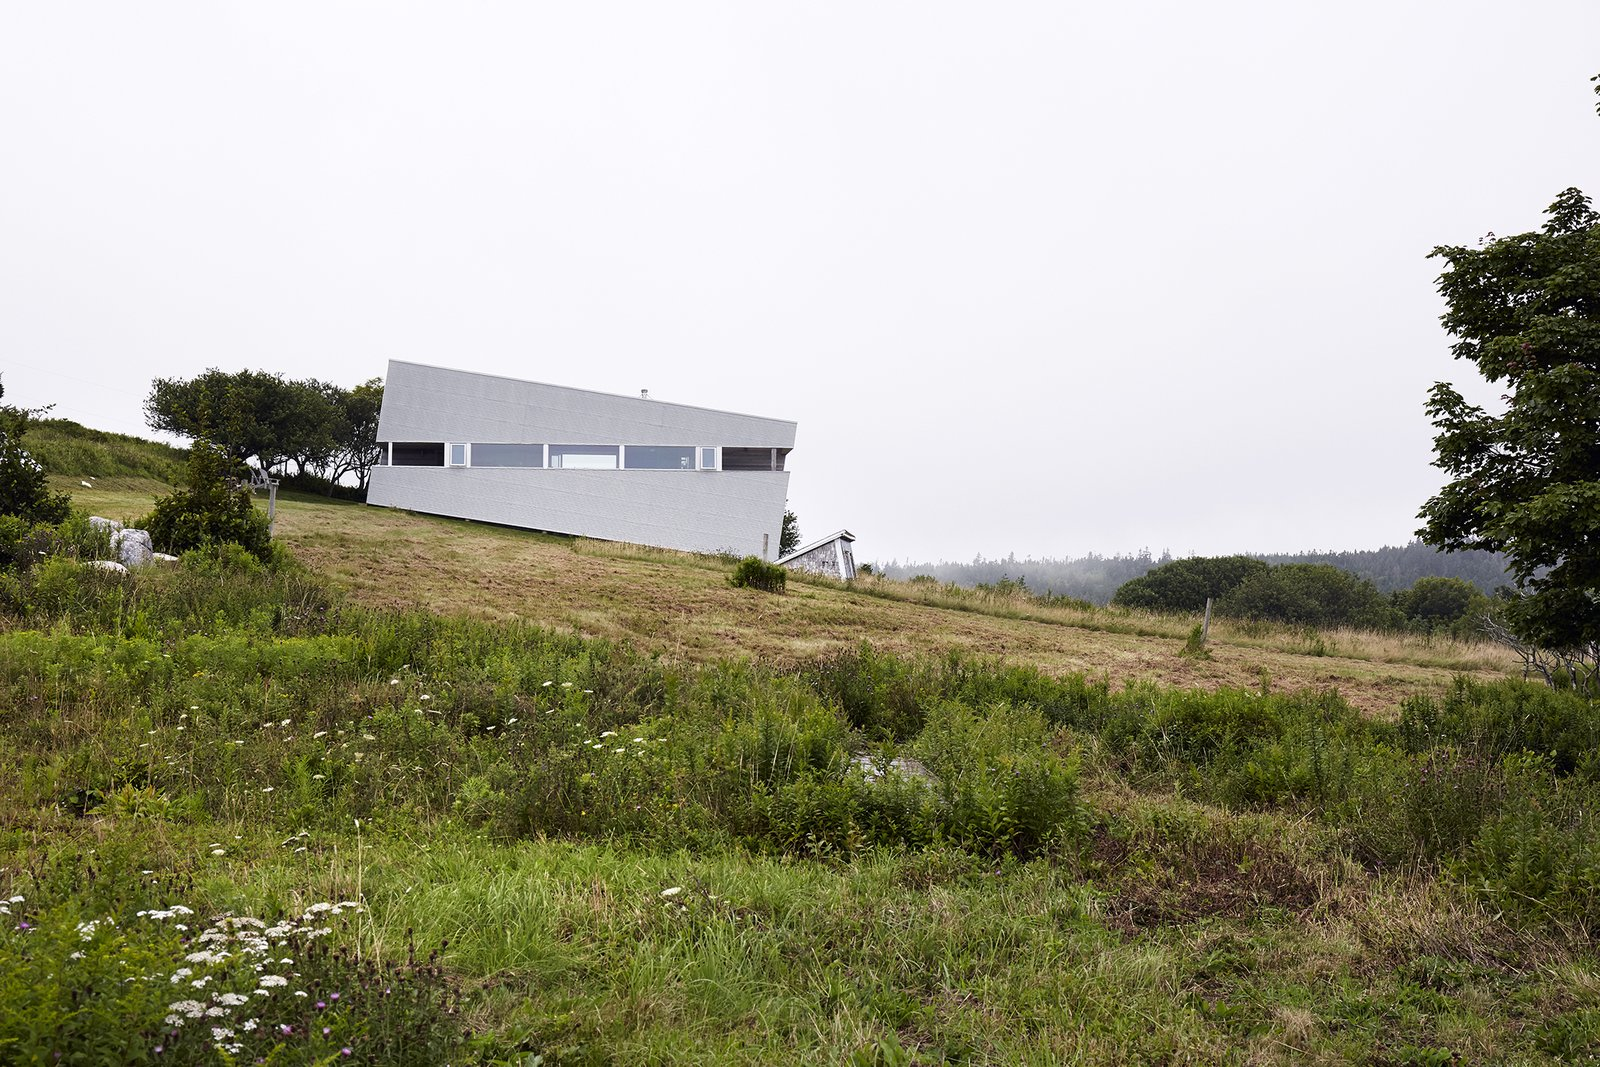 Imagined as a jewel box on a hill, Sliding House takes the place of a barn that once stood on this Nova Scotia site. Its form follows the slope of the land, while the windows are parallel with the horizon, setting up a tension between a plumb interior and a slanted exterior. The tilt of the structure isn't just a visual trick—it also helps the roof to drain. When the distinctive windows are lit from within, the house serves as a beacon for local sailors. Tagged: Side Yard, Exterior, Slope, Field, Metal Siding Material, and House.  Photo 2 of 13 in Lights Will Guide You Home